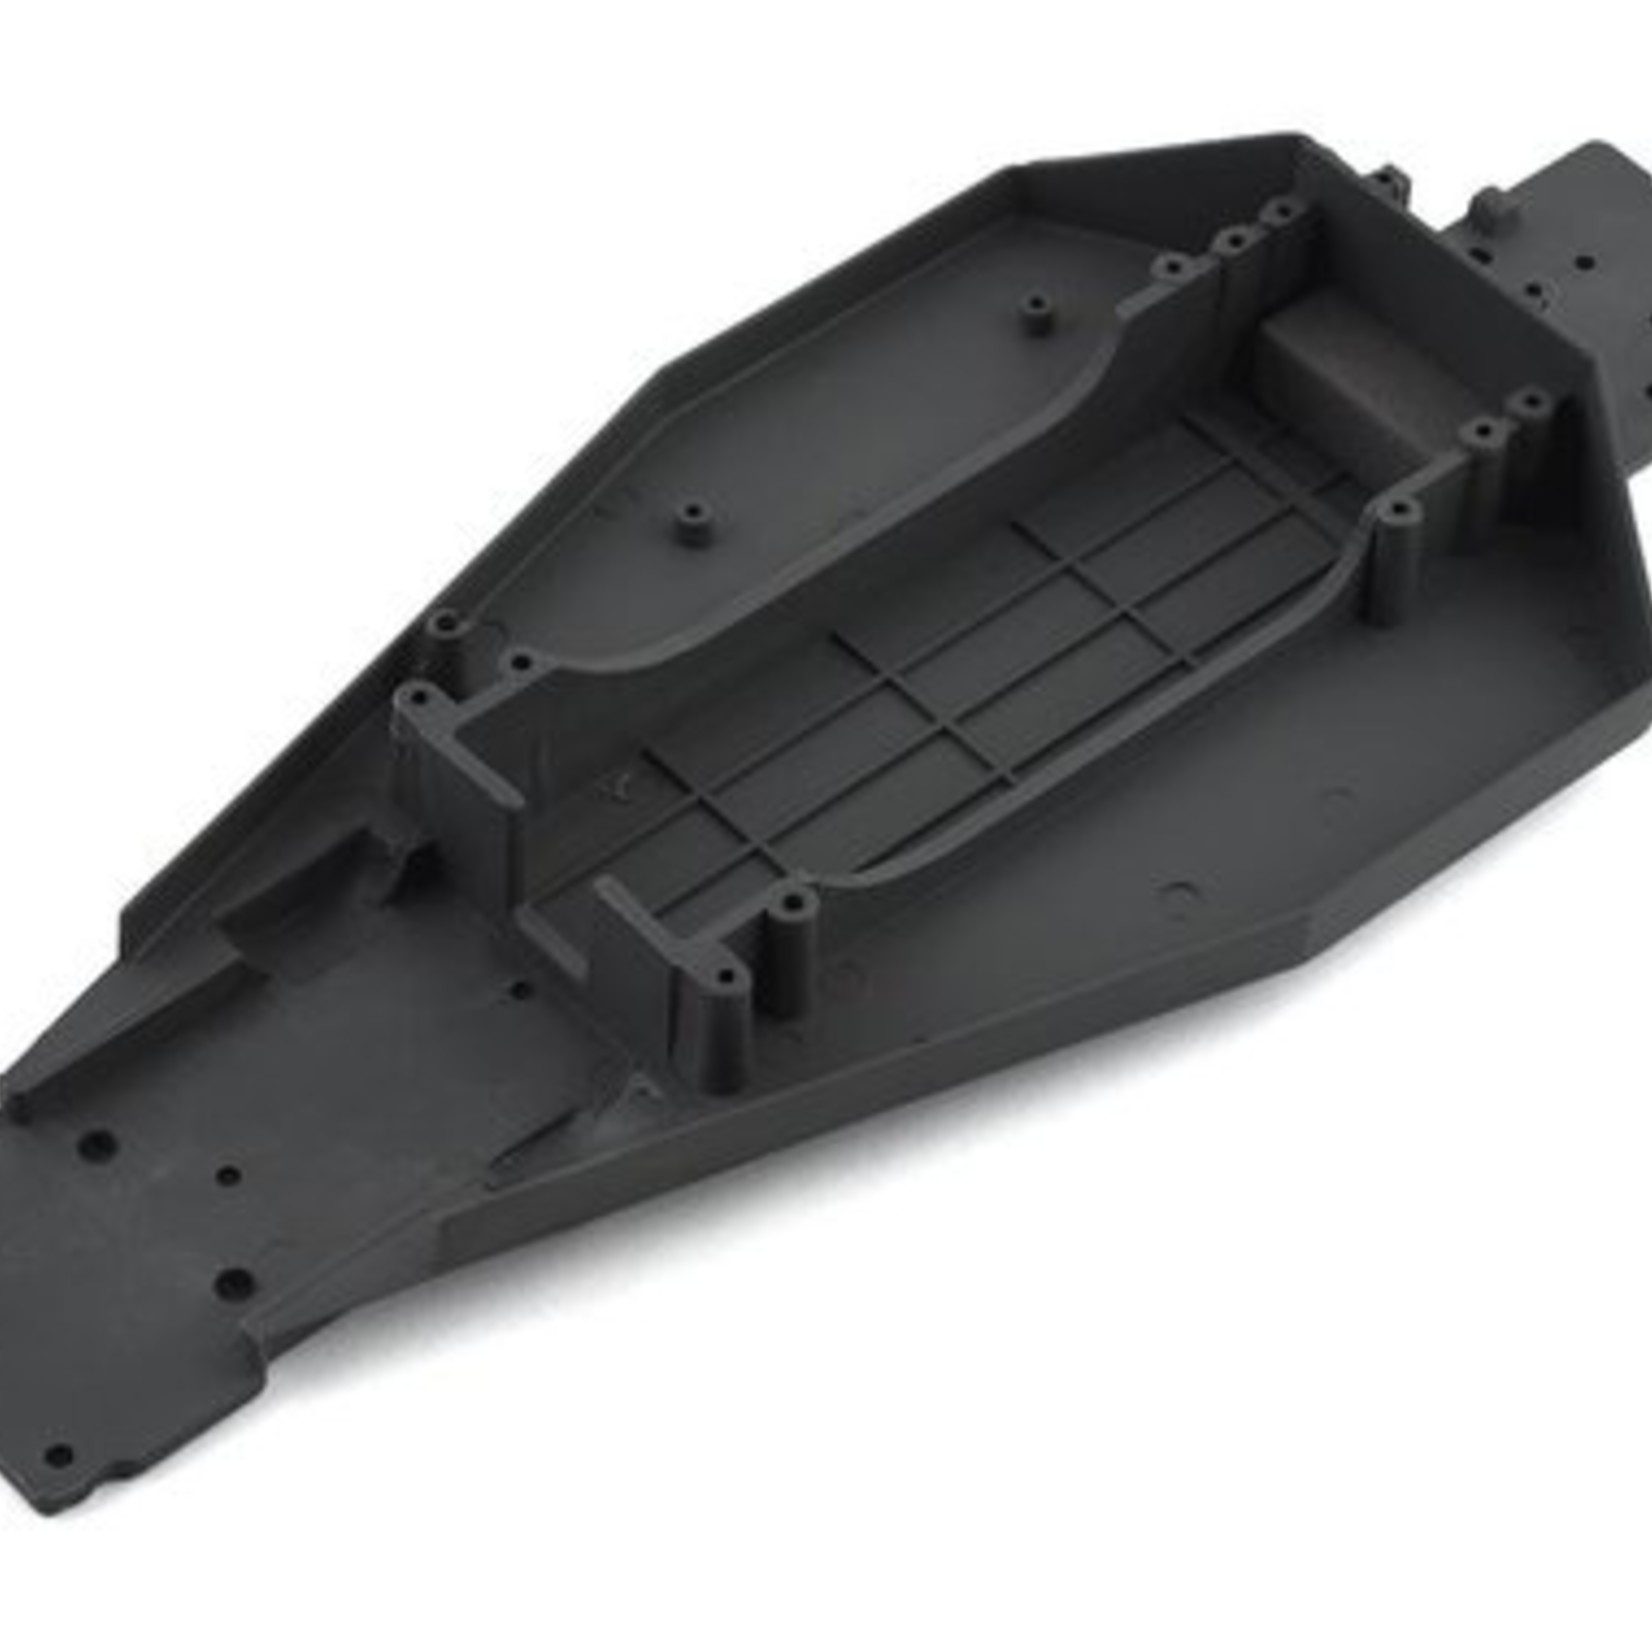 Traxxas TRA3722R Traxxas Lower Chassis (Grey) (166mm Long Battery Compartment) (Fits Both Flat And Hump Style Battery Packs) (Use Only with #3725R ESC Mounting Plate)